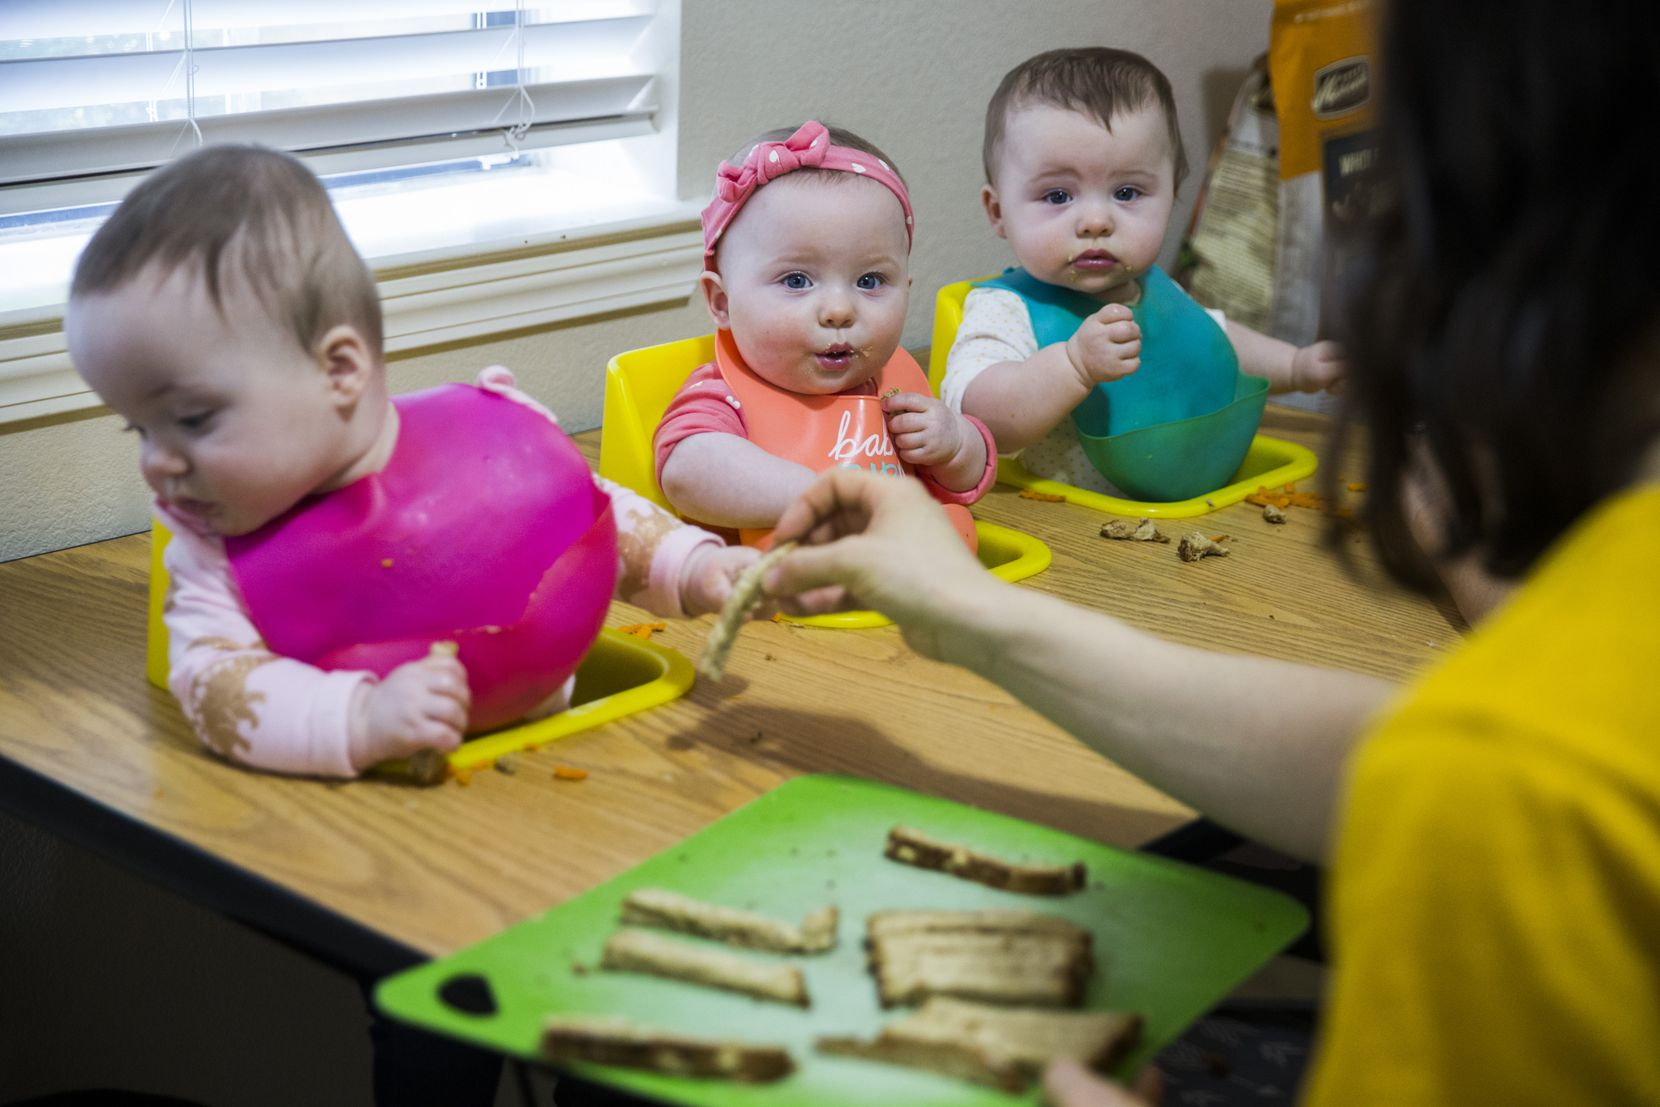 Actress Allison Pistorius (right) feeds her triplets (from left) Austen Finch Pistorius Hury, Birdie Sue Pistorius Hury and Charlie Faye Pistorius Hury, who share slices of toast with hummus on Wednesday, October 9, 2019. Pistorius, who had triplets 11 months ago, is playing the part of Dracula at Theatre Three in Dallas.